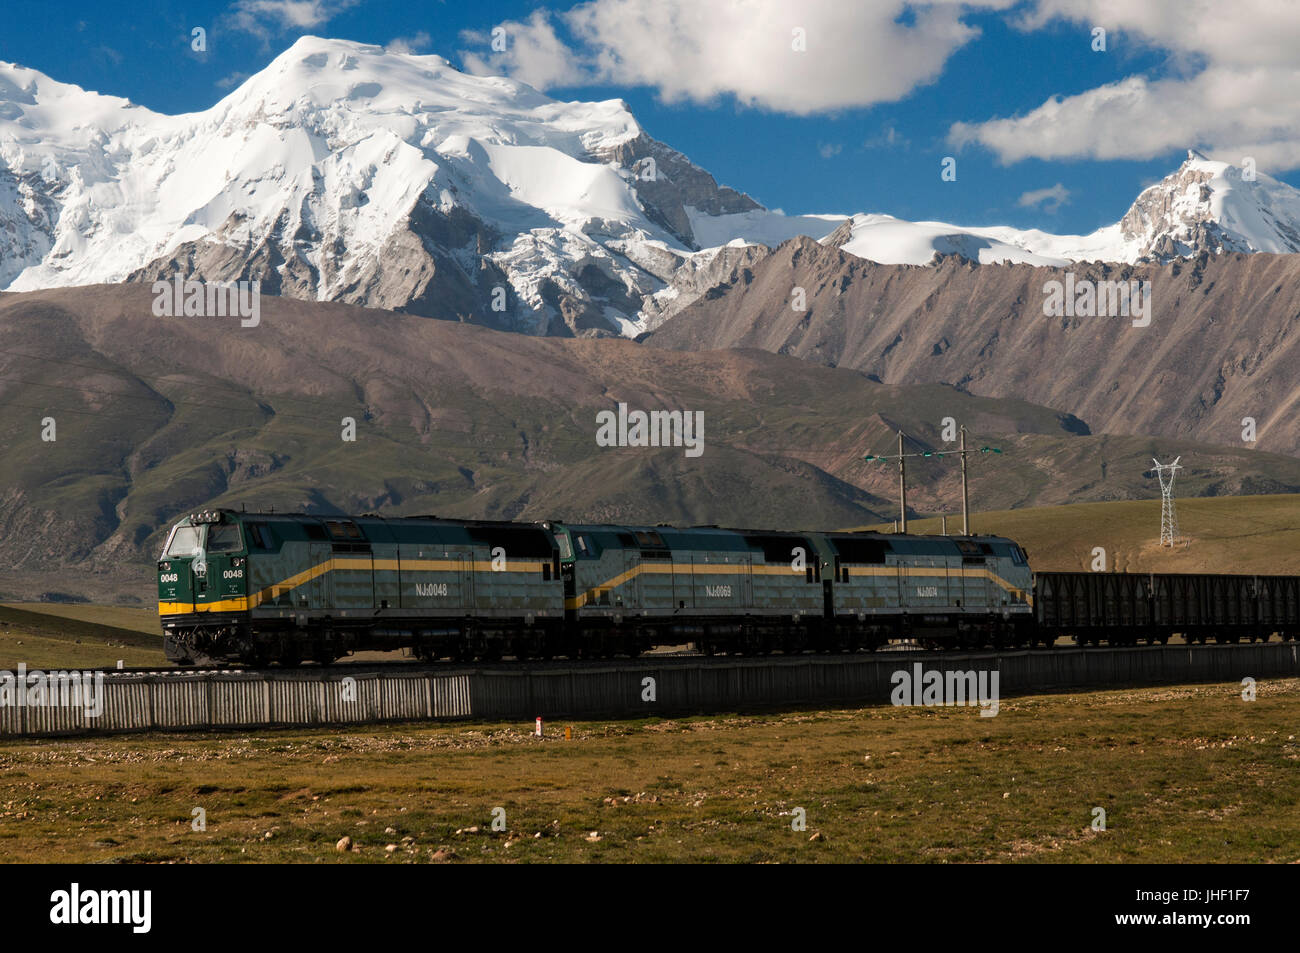 The Lhasa train and the Nyenchen Tanglha mountain, near Lhasa, Tibet, China. Stock Photo